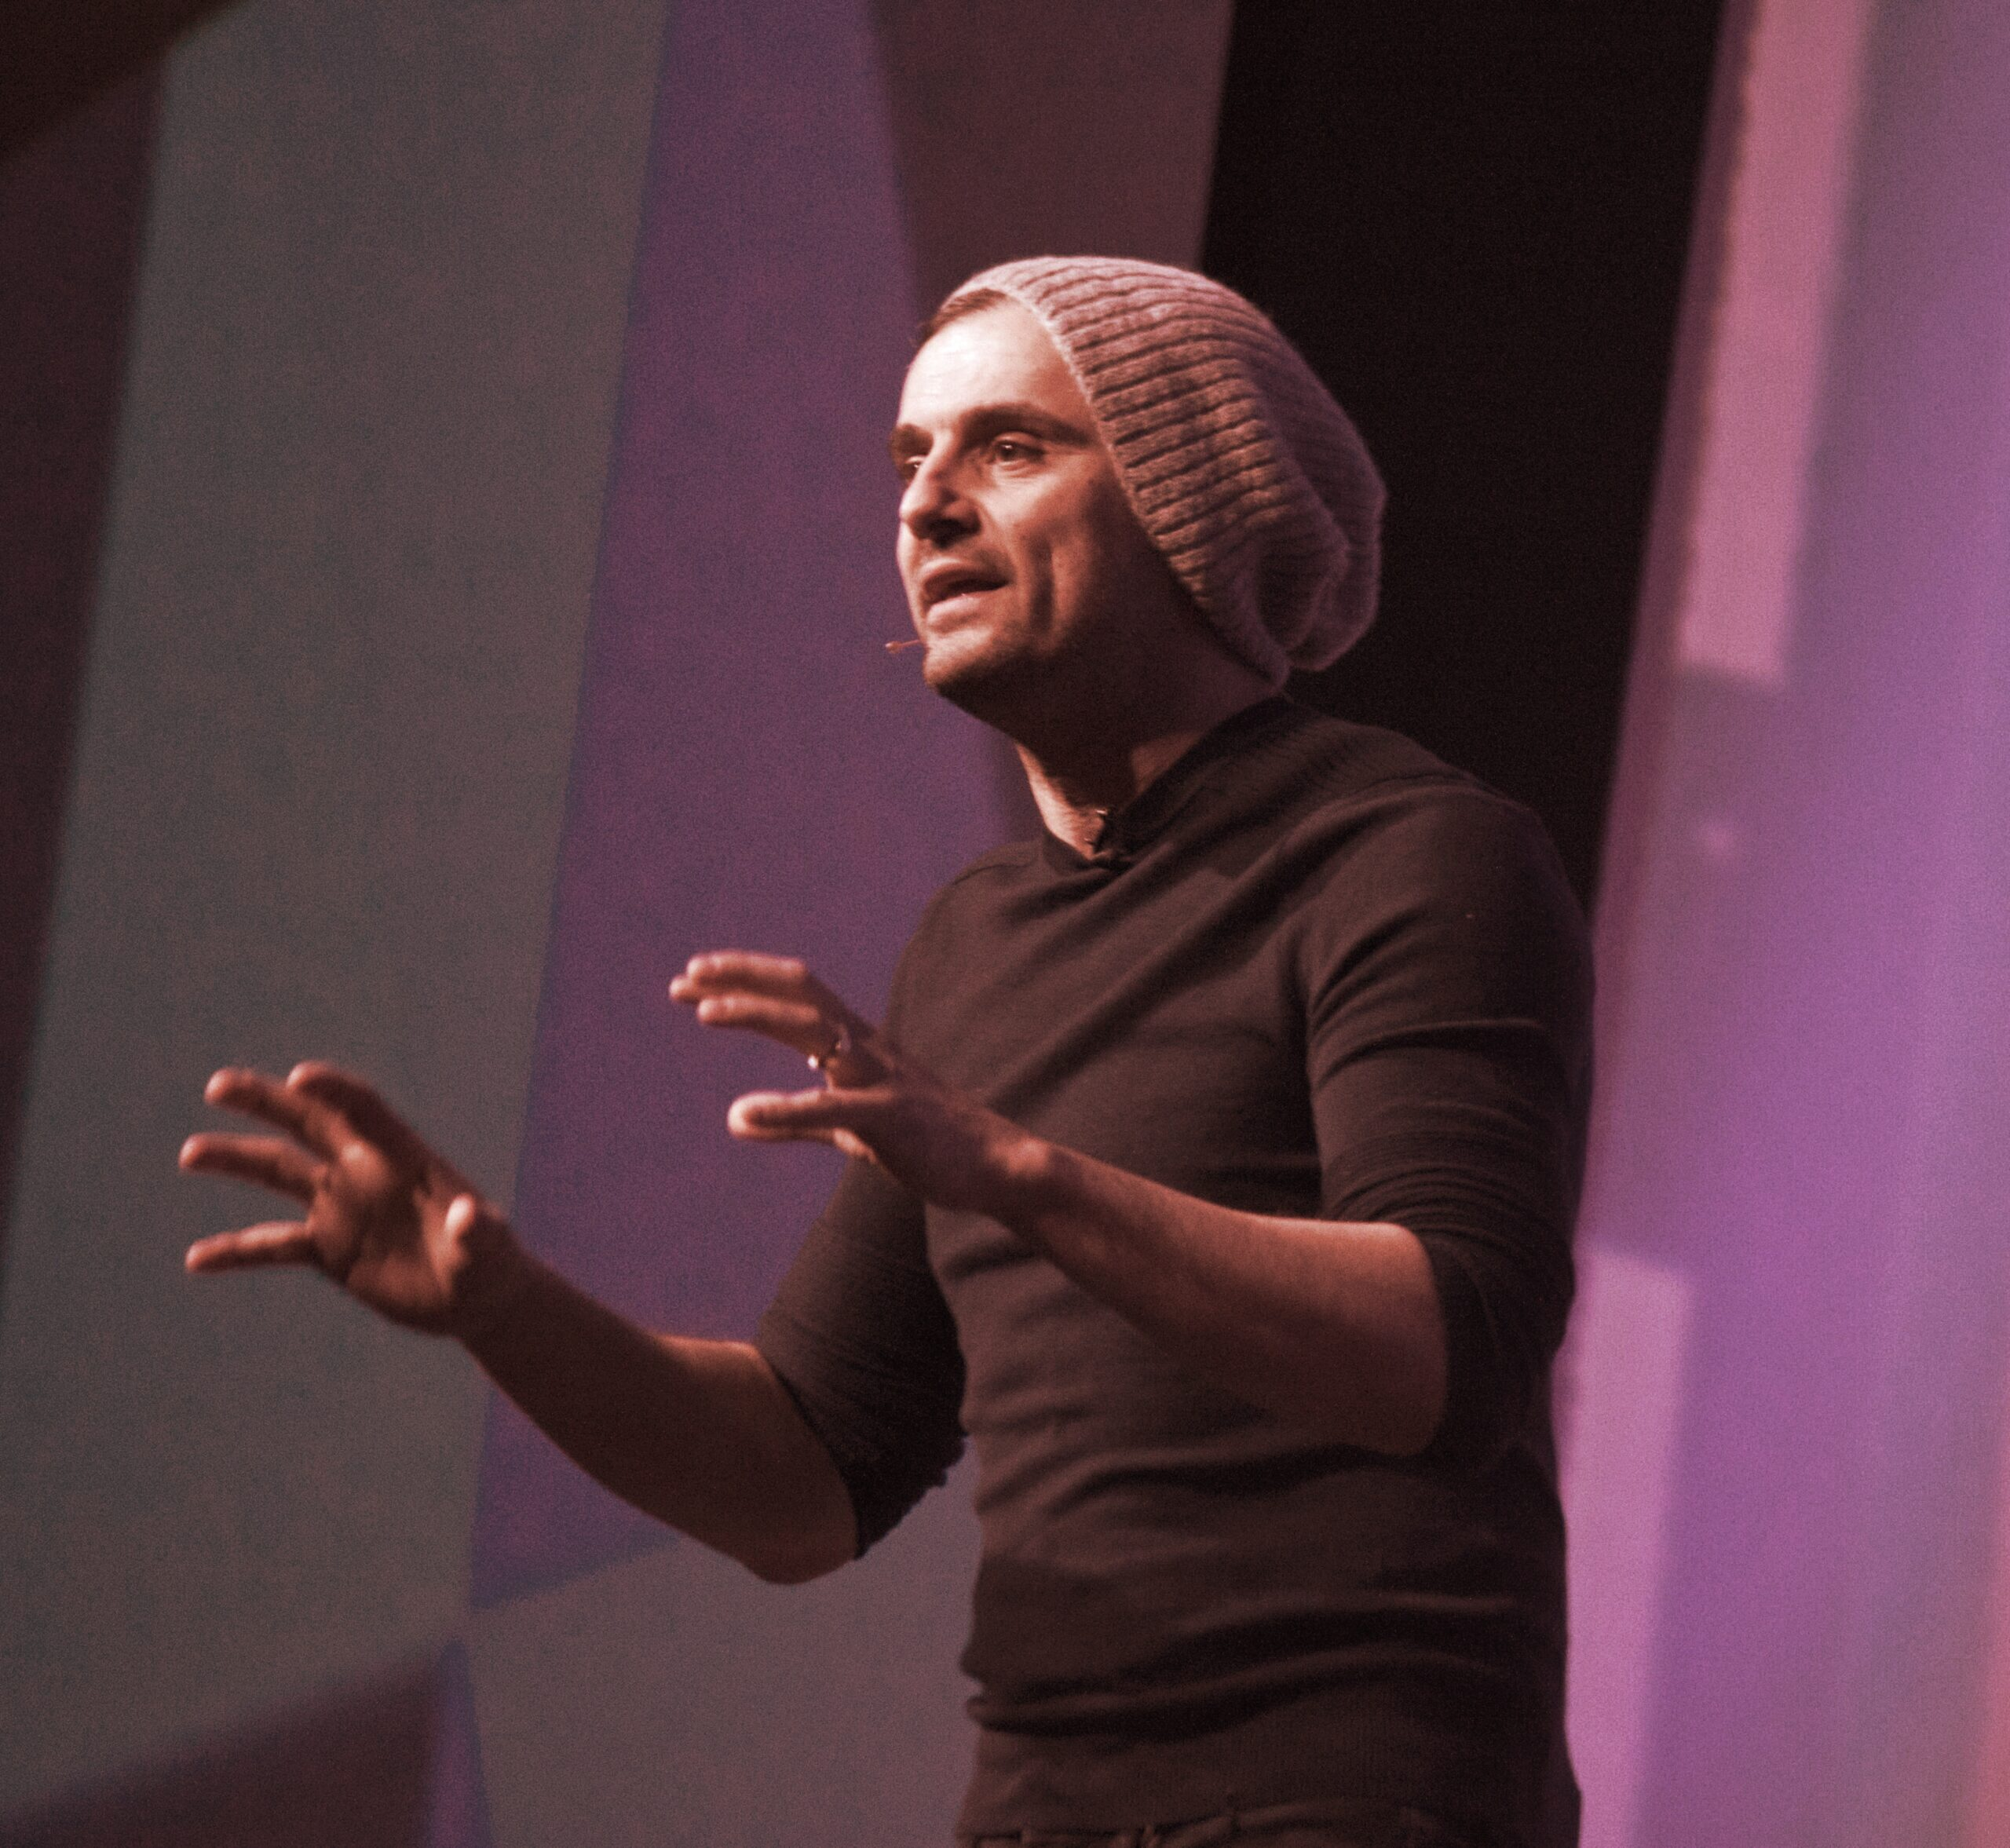 Gary Vee Launches NFT Series: 'Not a Cash Grab'